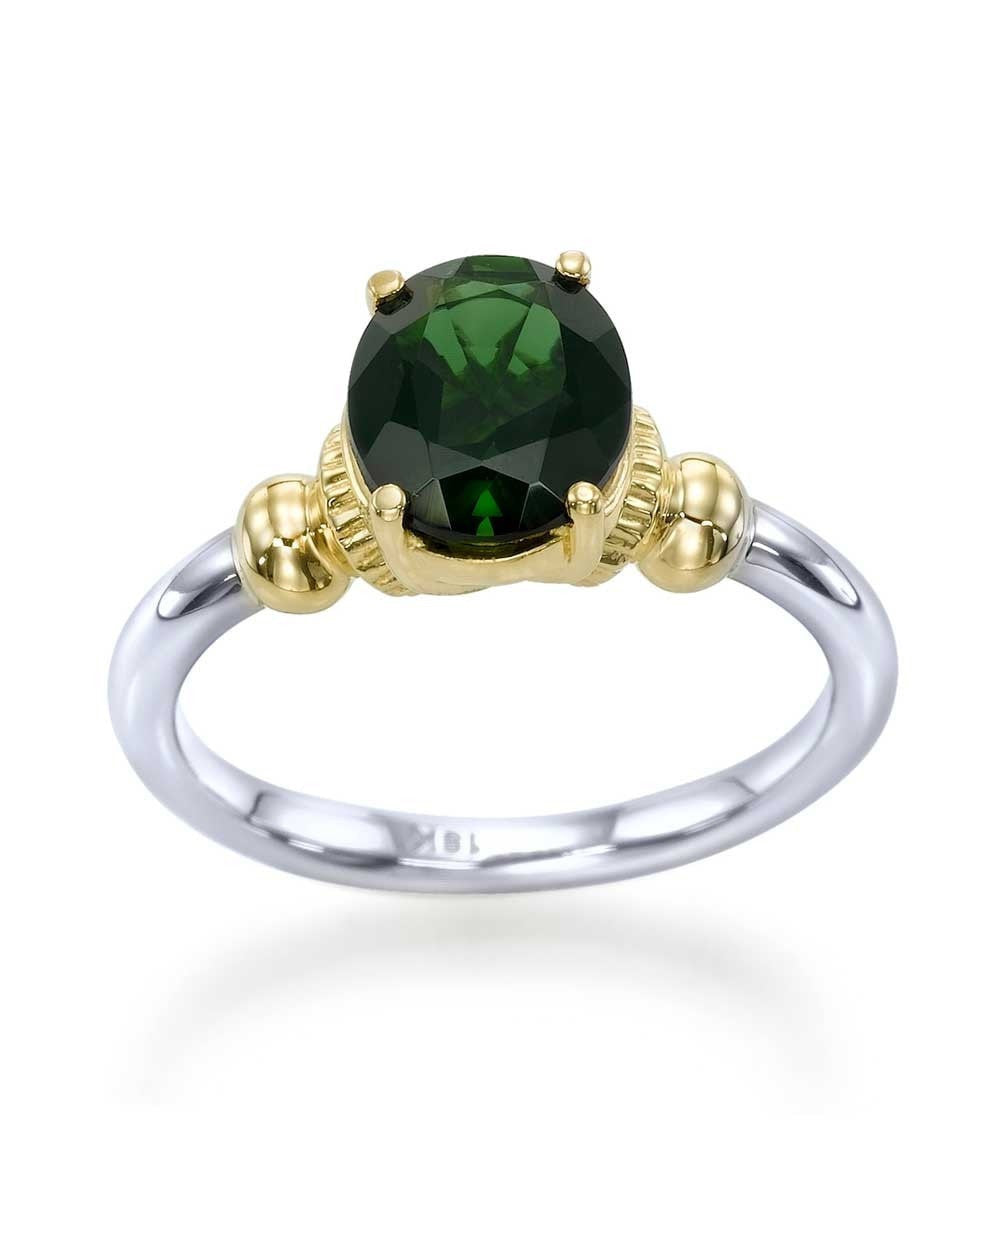 home collection diamond engagement rings green stone product thejewelleryworkshop precious web tourmaline ring three